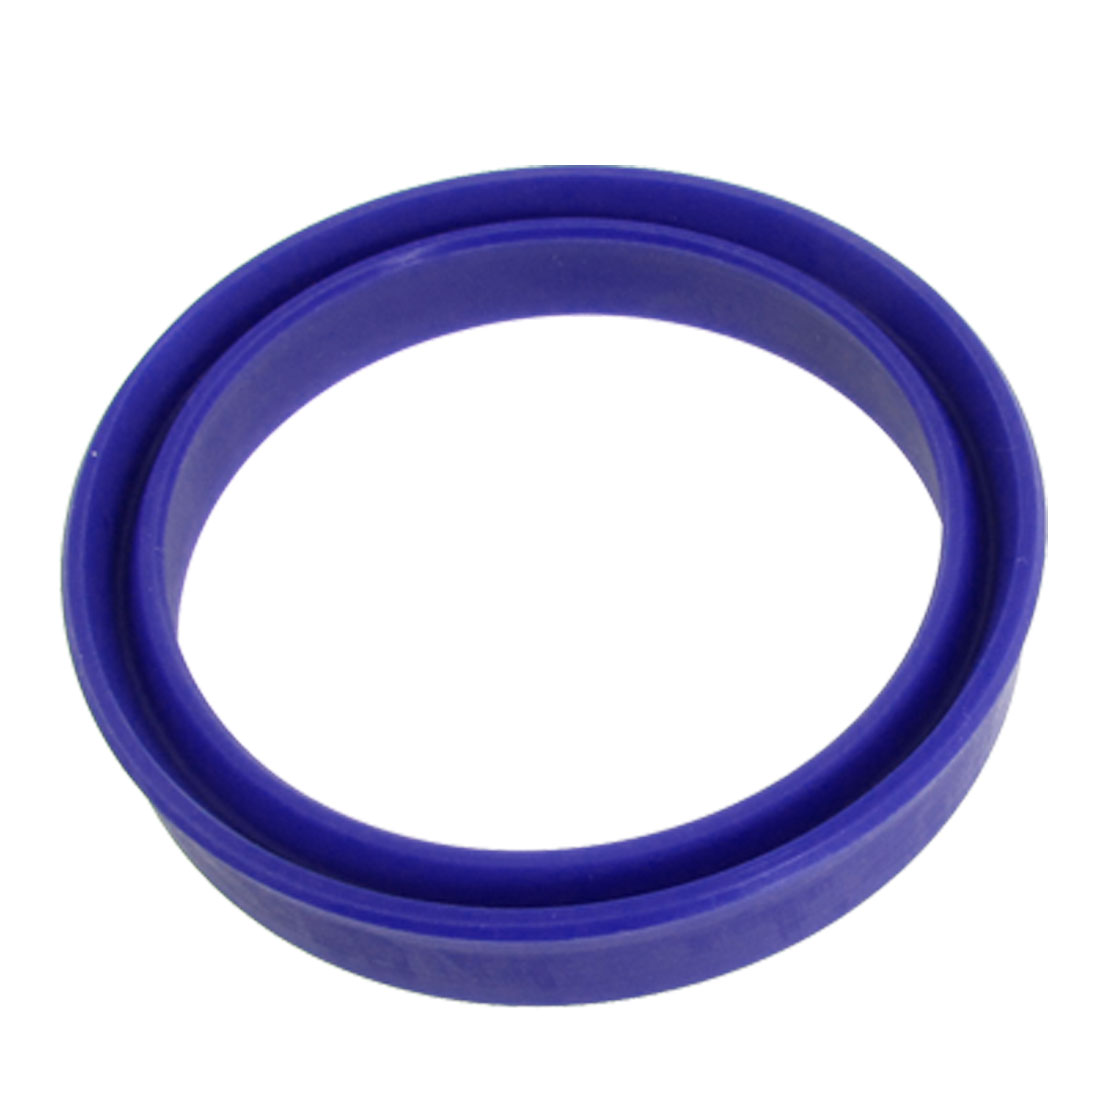 65mm x 77mm x 14mm Polyurethane PU Piston Rod Oil Seal IDU Type